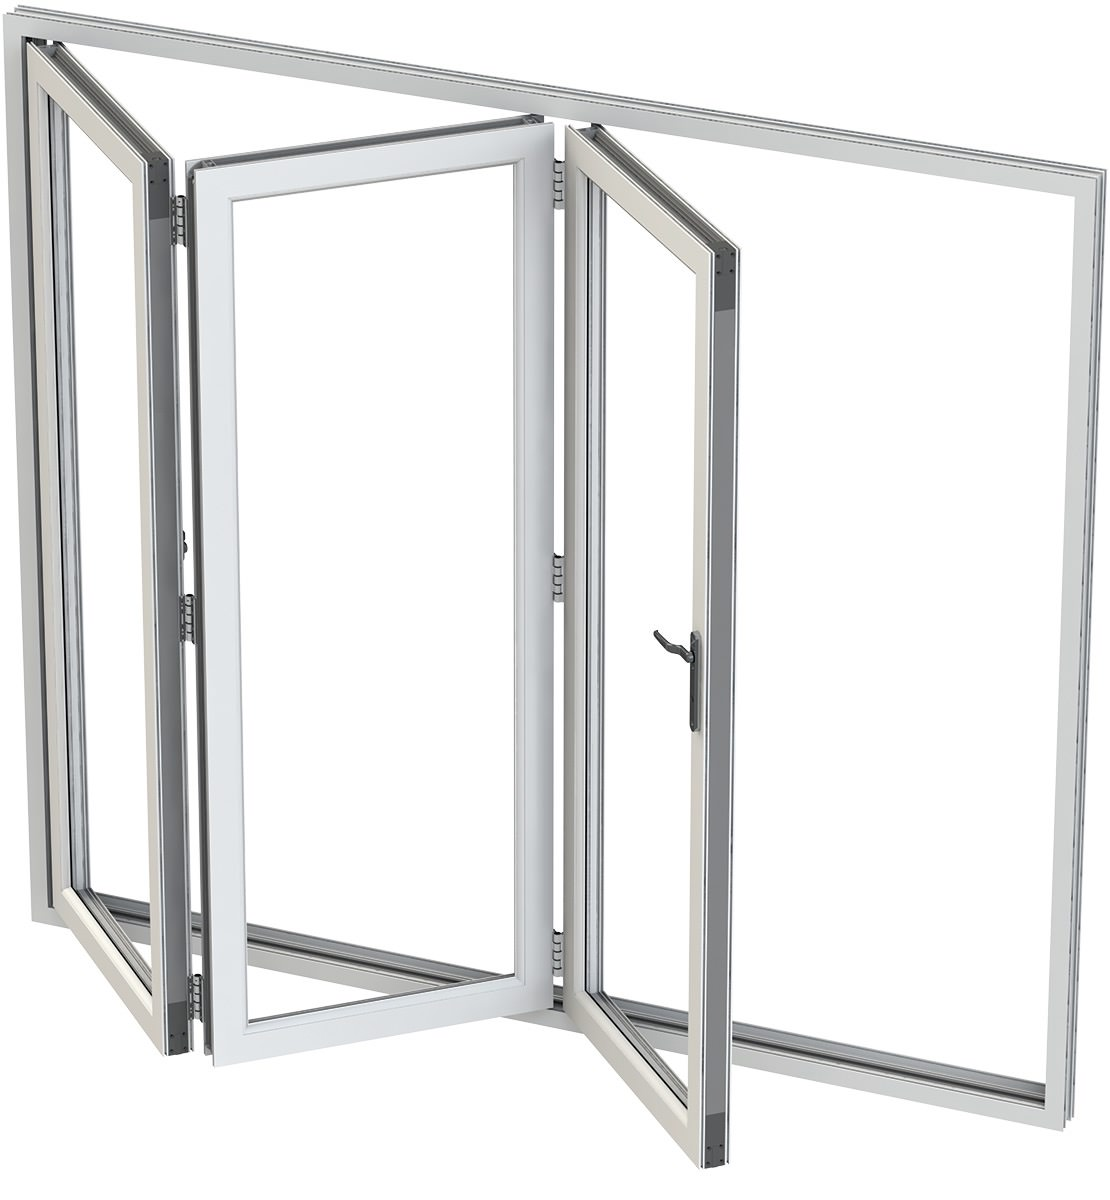 Folding Sliding Door Company Leeds: Elmhurst Sliding Folding Doors